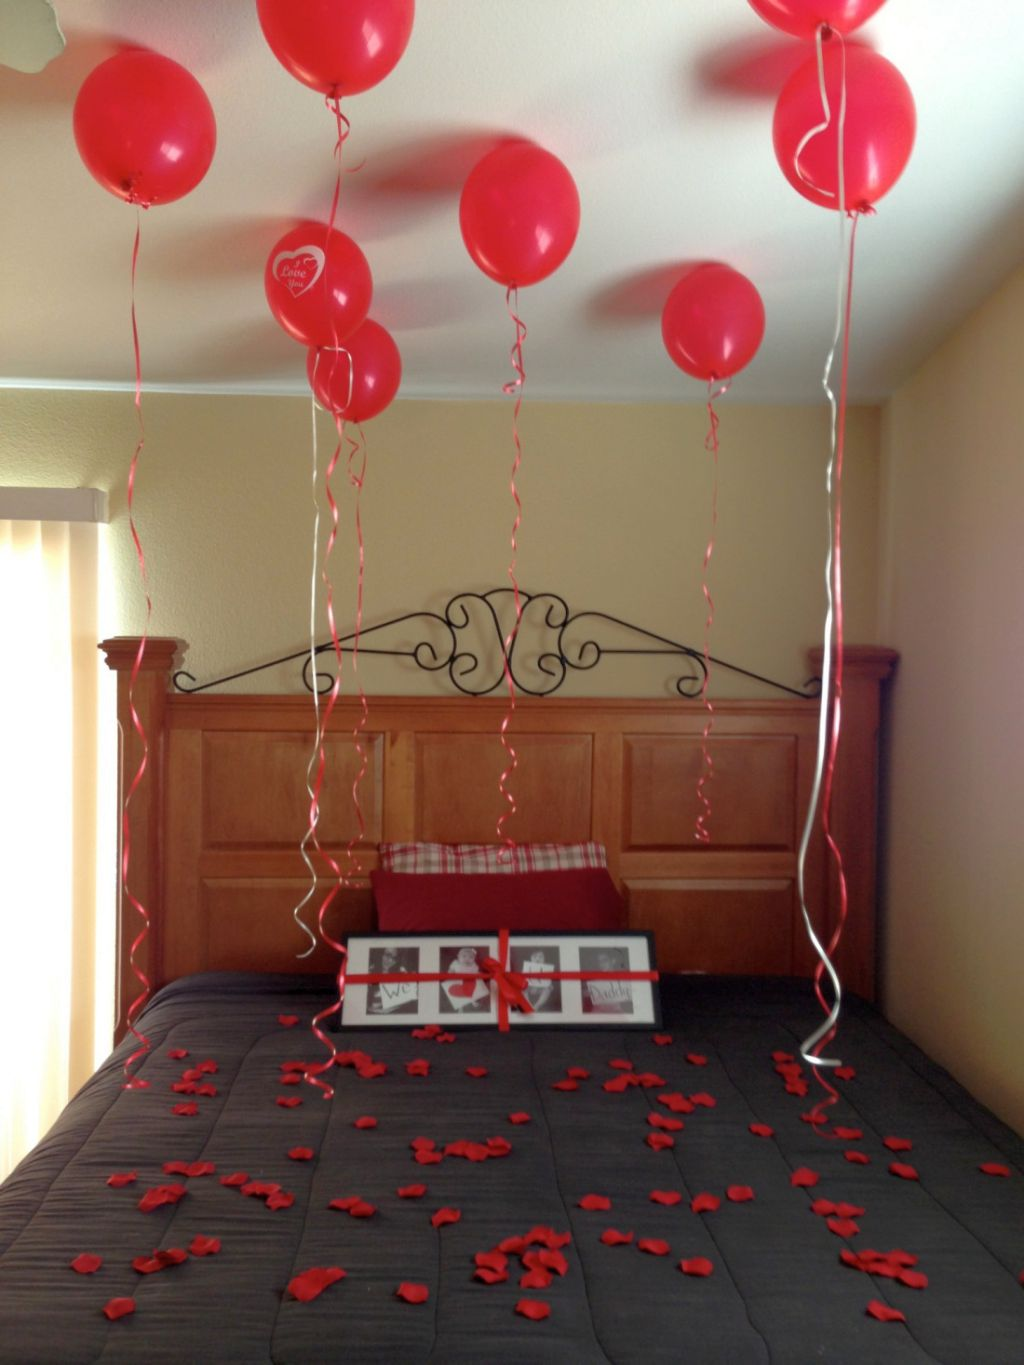 Easy diy bedroom decoration for valentines day with for Bed decoration with rose petals